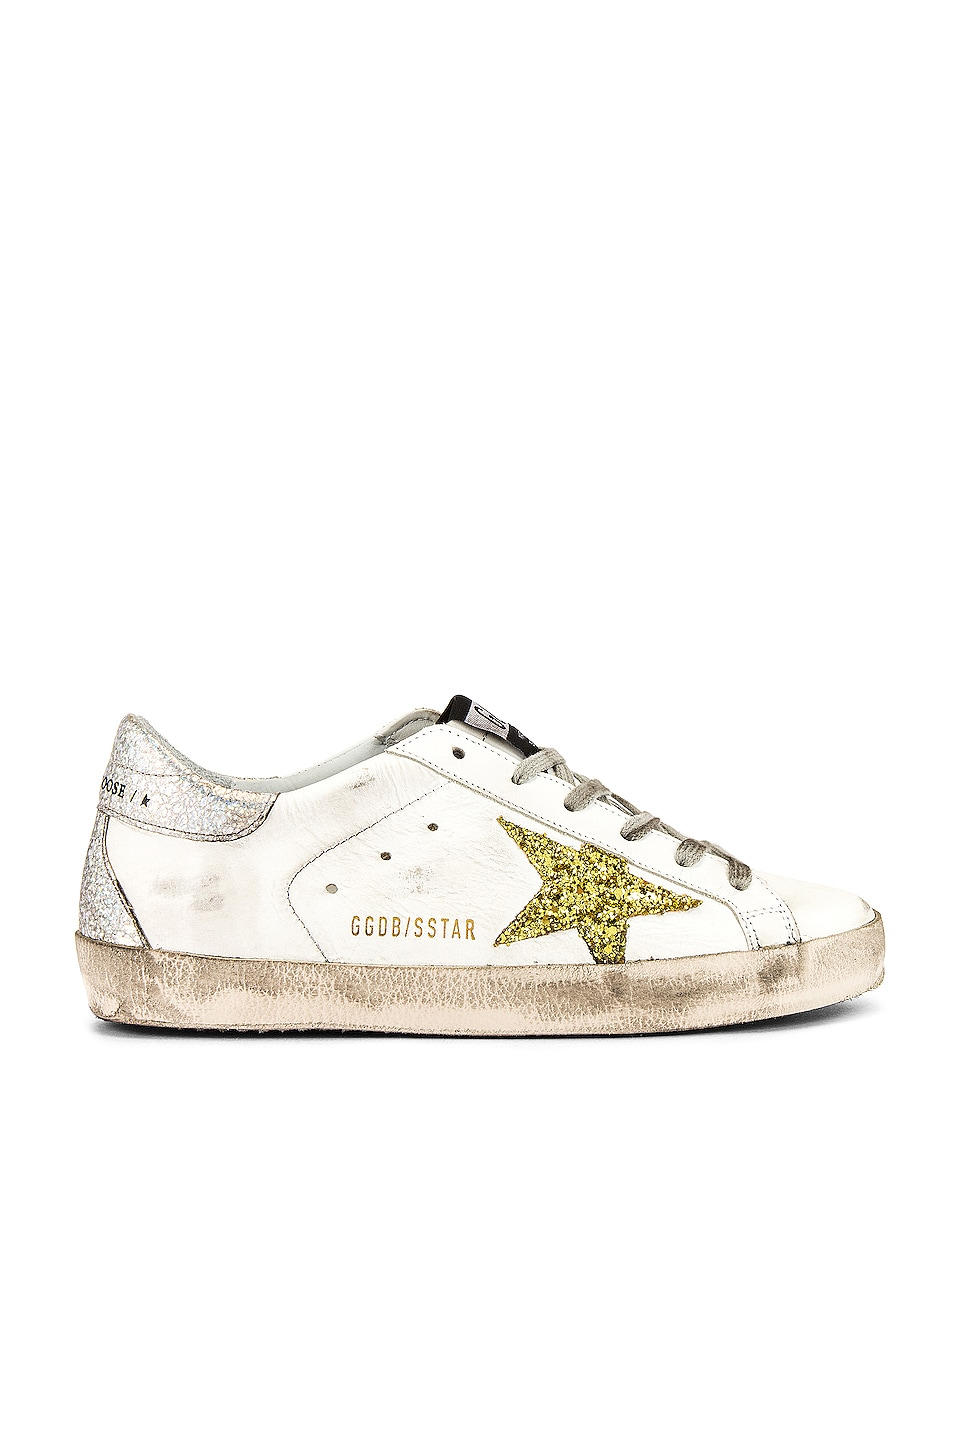 Golden Goose Superstar Sneaker in White, Gold Glitter & Silver